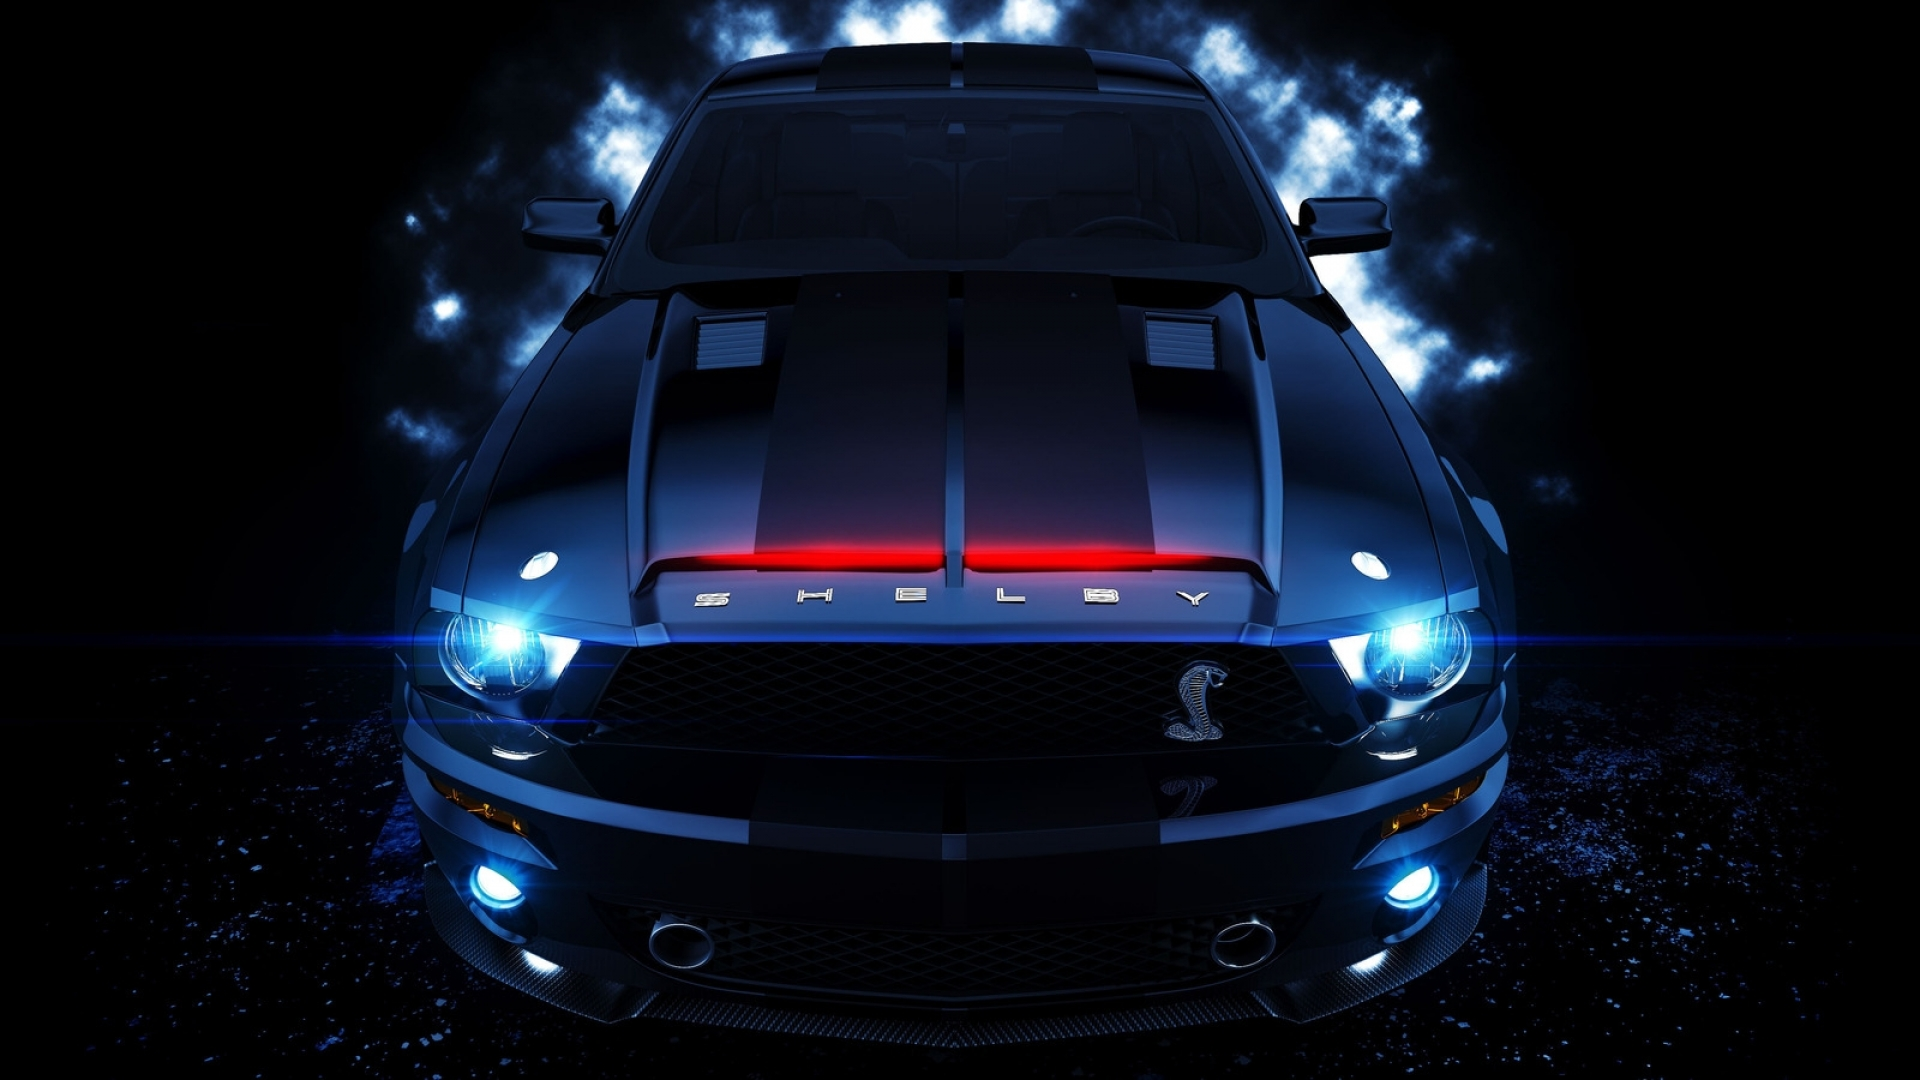 Ford Mustang Shelby Gt muscle cars wallpaper 1920x1080 48333 1920x1080